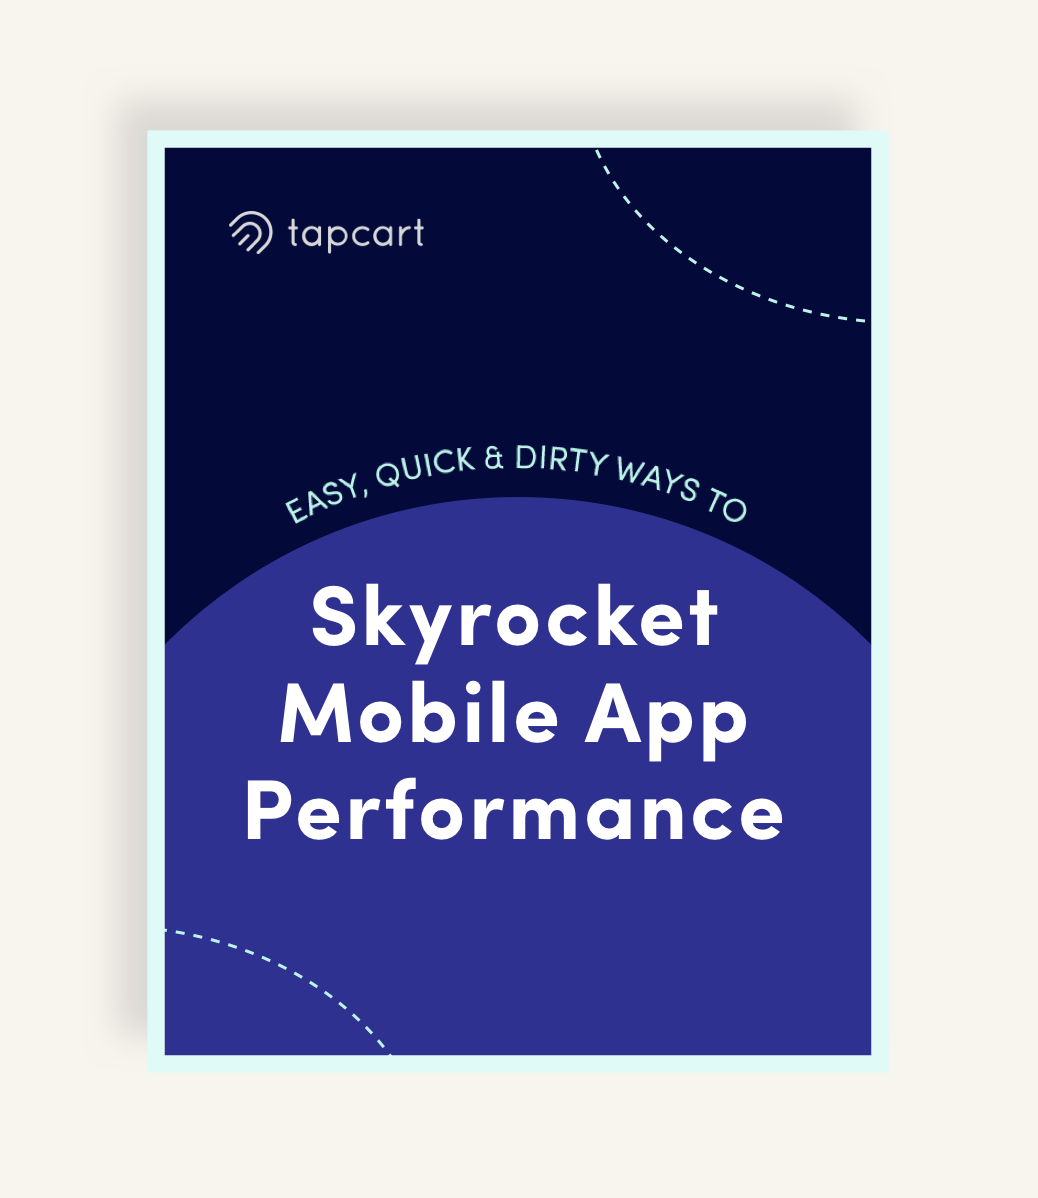 Easy, Quick, and Dirty Ways to Skyrocket App Performance